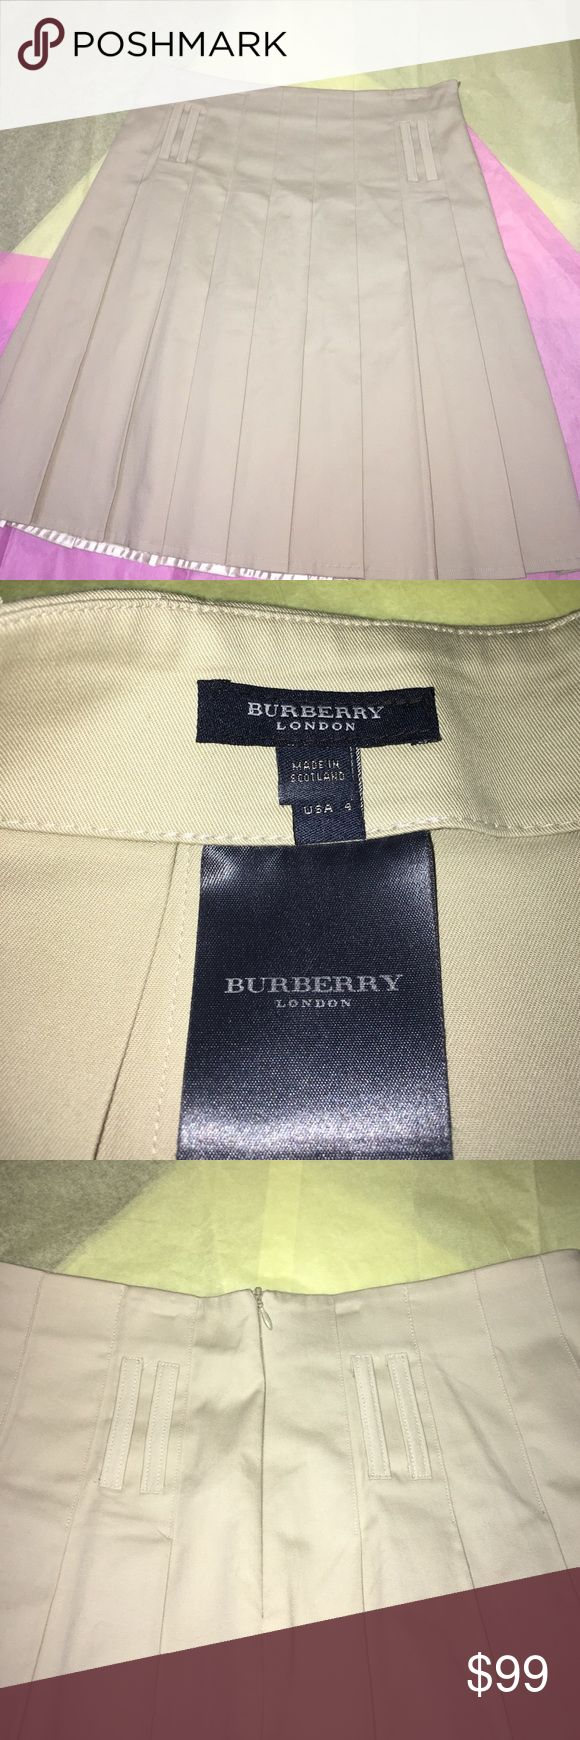 "Authentic Khaki Burberry Skirt. ❤️🌺 Classic and Timeless. 22"" long and waist measures 31"". Zip up in back and has 4 classic double belt loops.  Like New Condition! Here at addition to your closet. Reasonable offers accepted👍🌸 Burberry Skirts Midi"